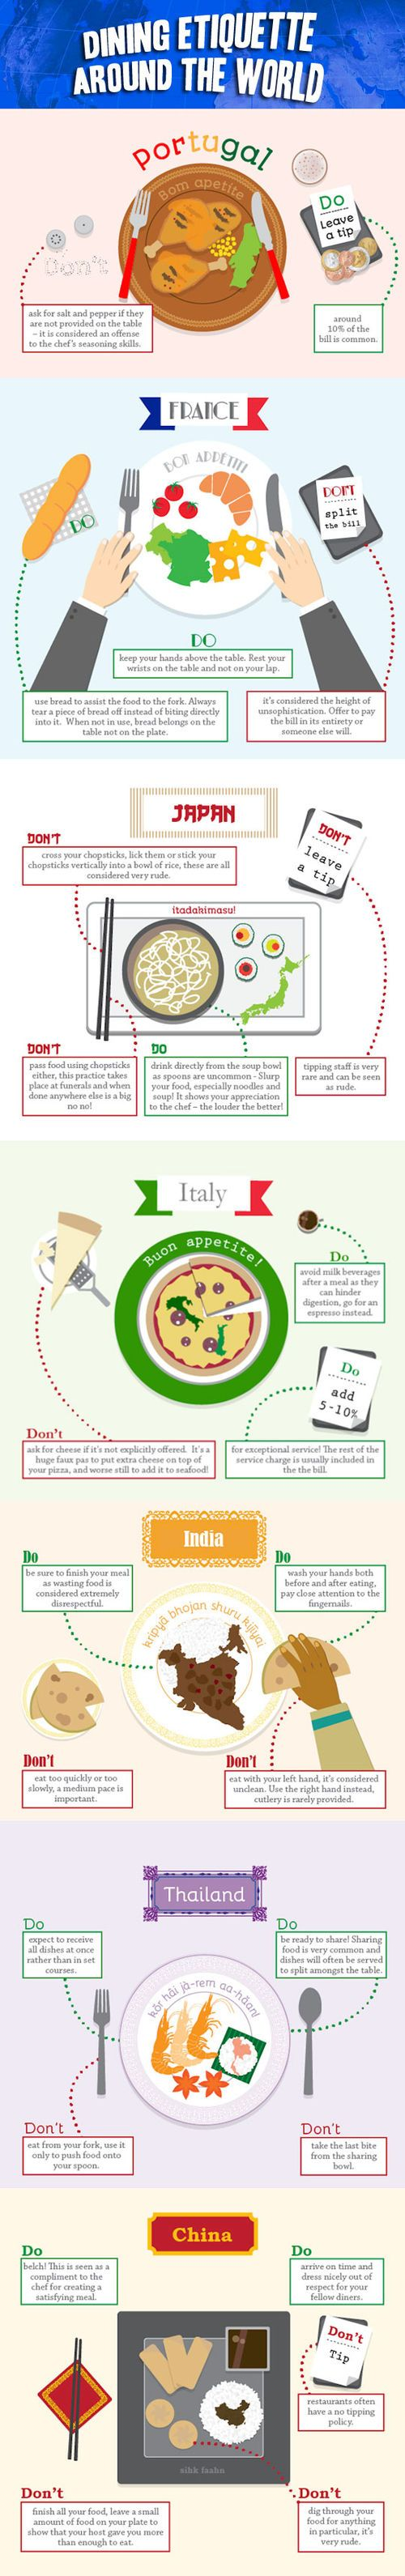 Dining etiquette around the world. France. Portugal. India. China. Italy. Japan. Thailand. #traveltips